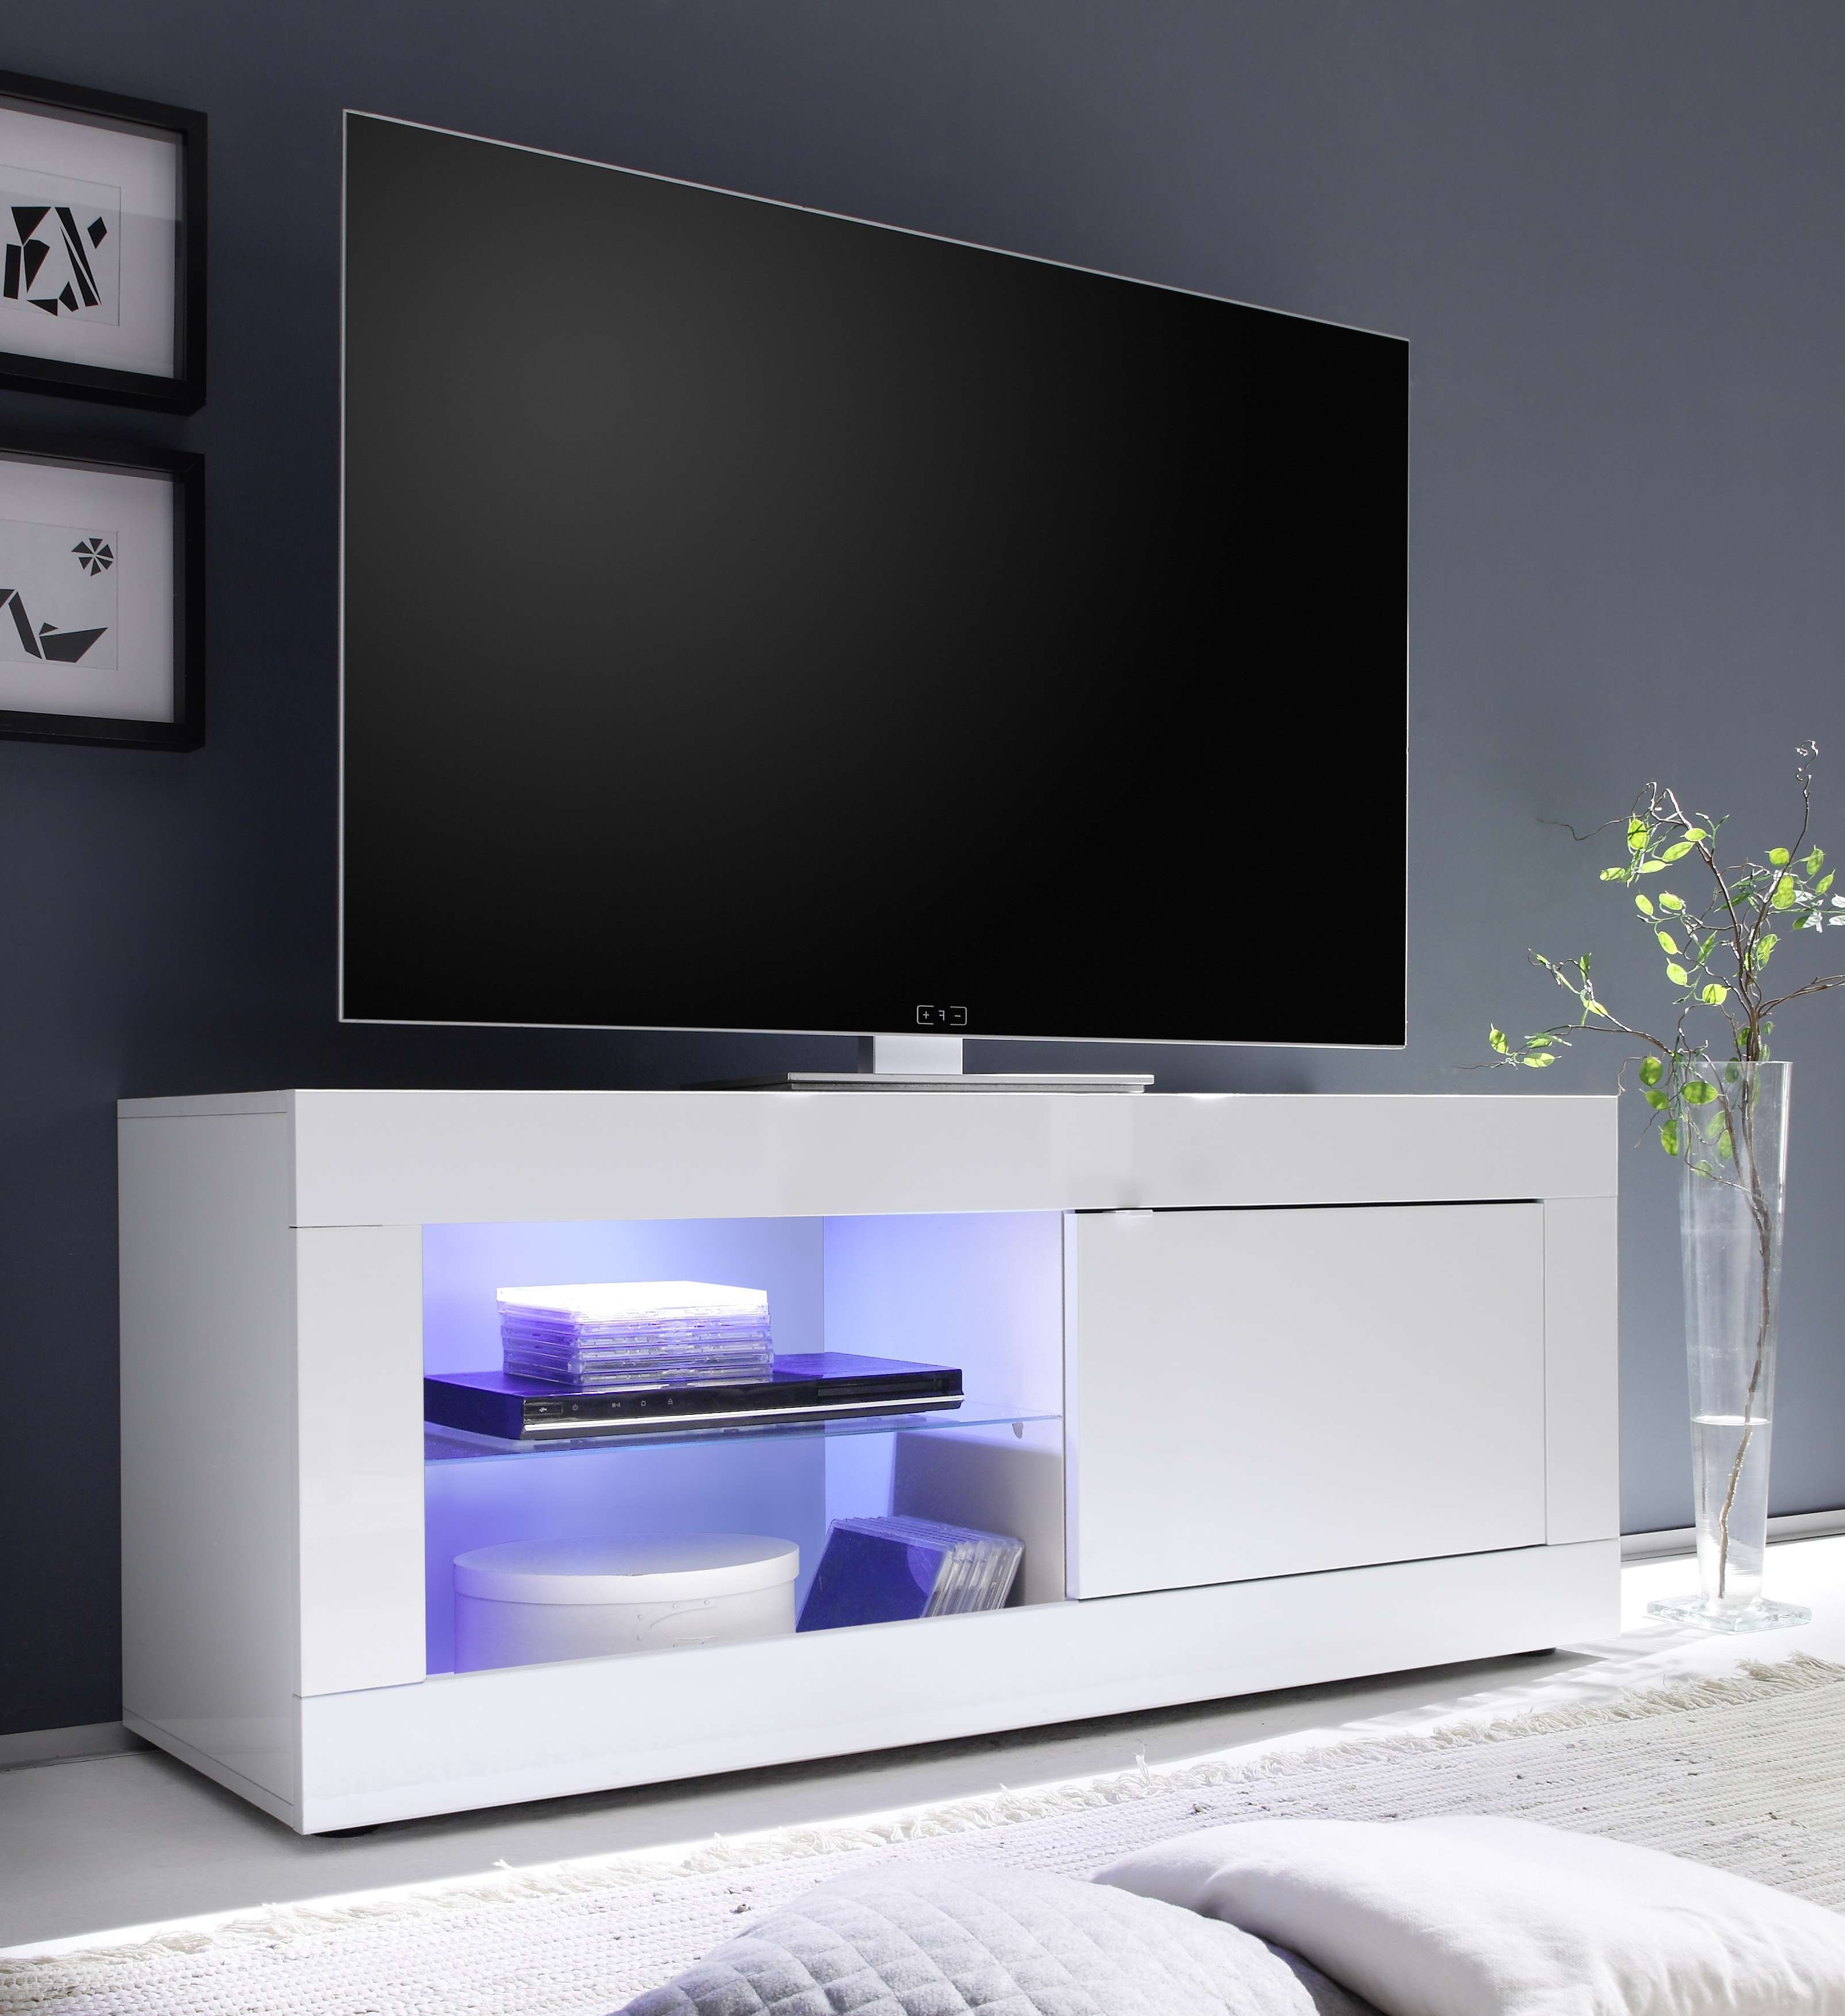 Basic Small Tv Stand, All White Buy Online At Best Price – Sohomod Inside Tv Stands White (View 3 of 20)